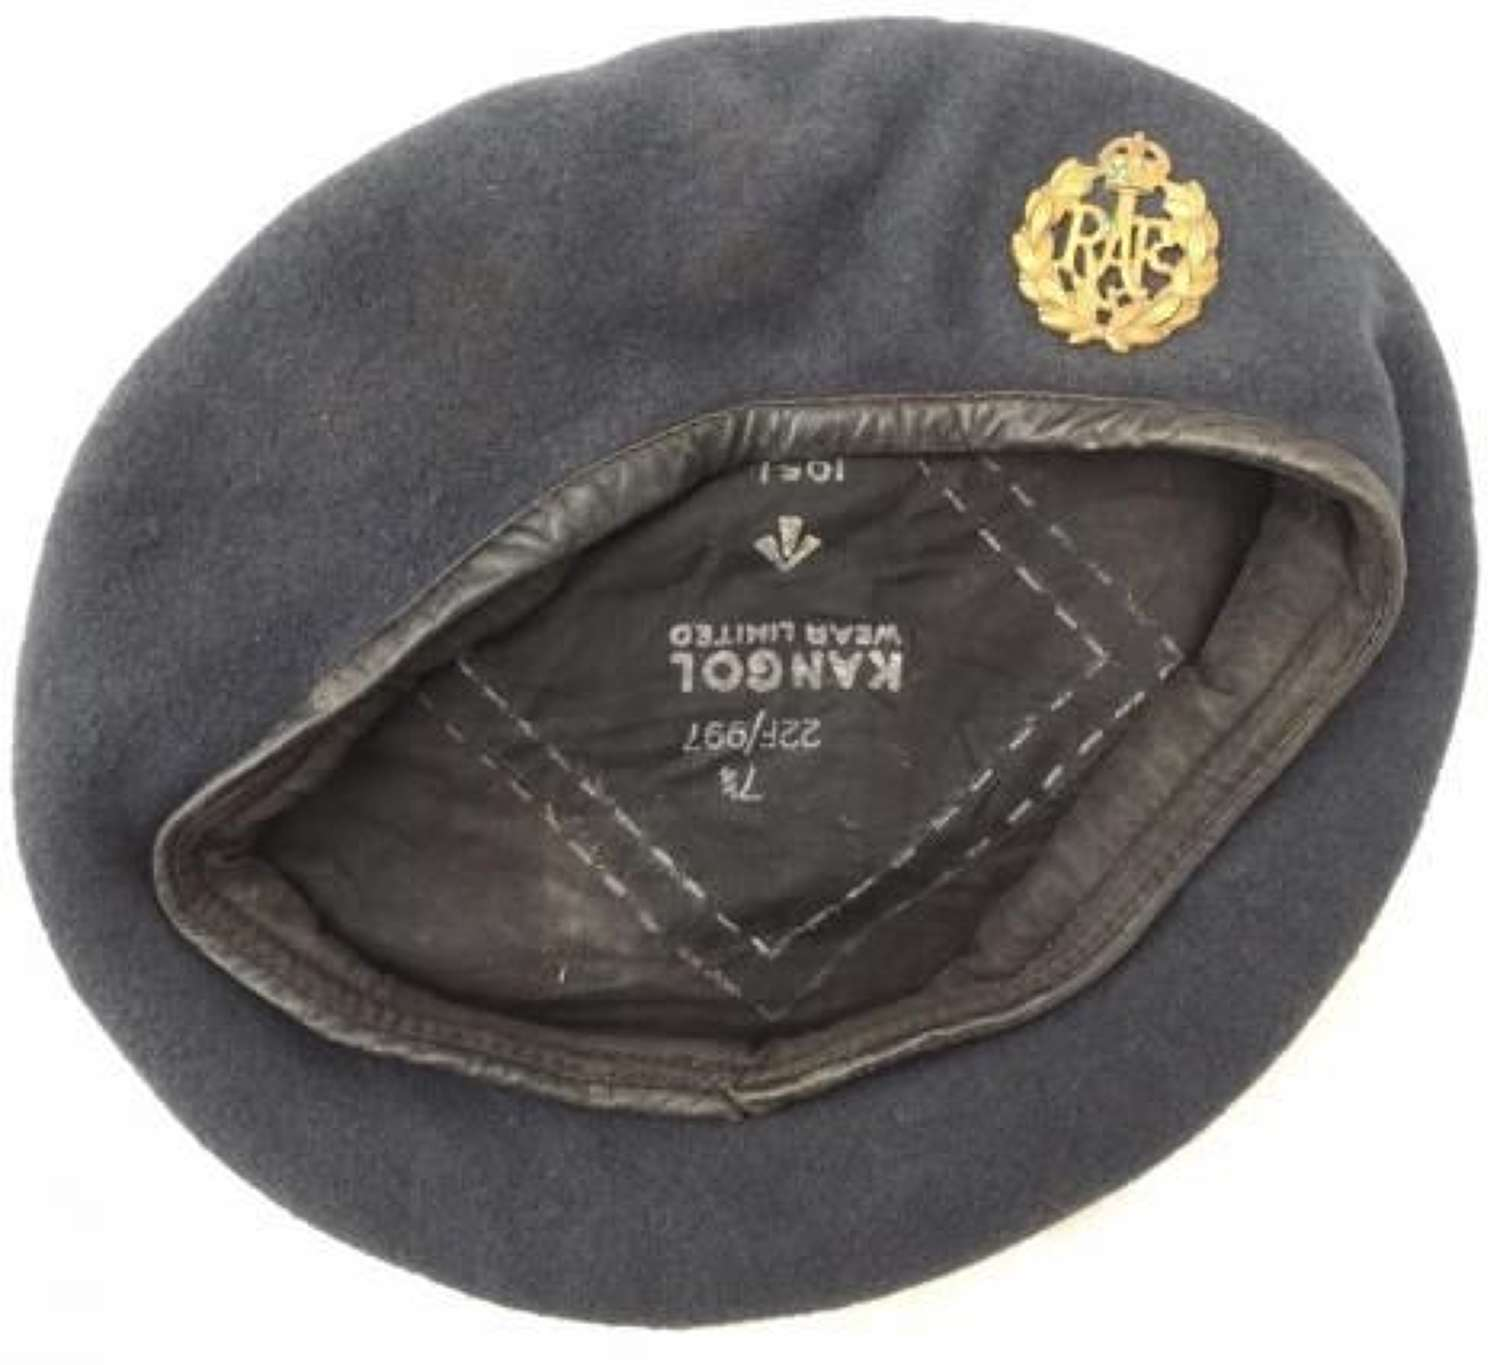 1951 Dated RAF beret - Size 7 1/4